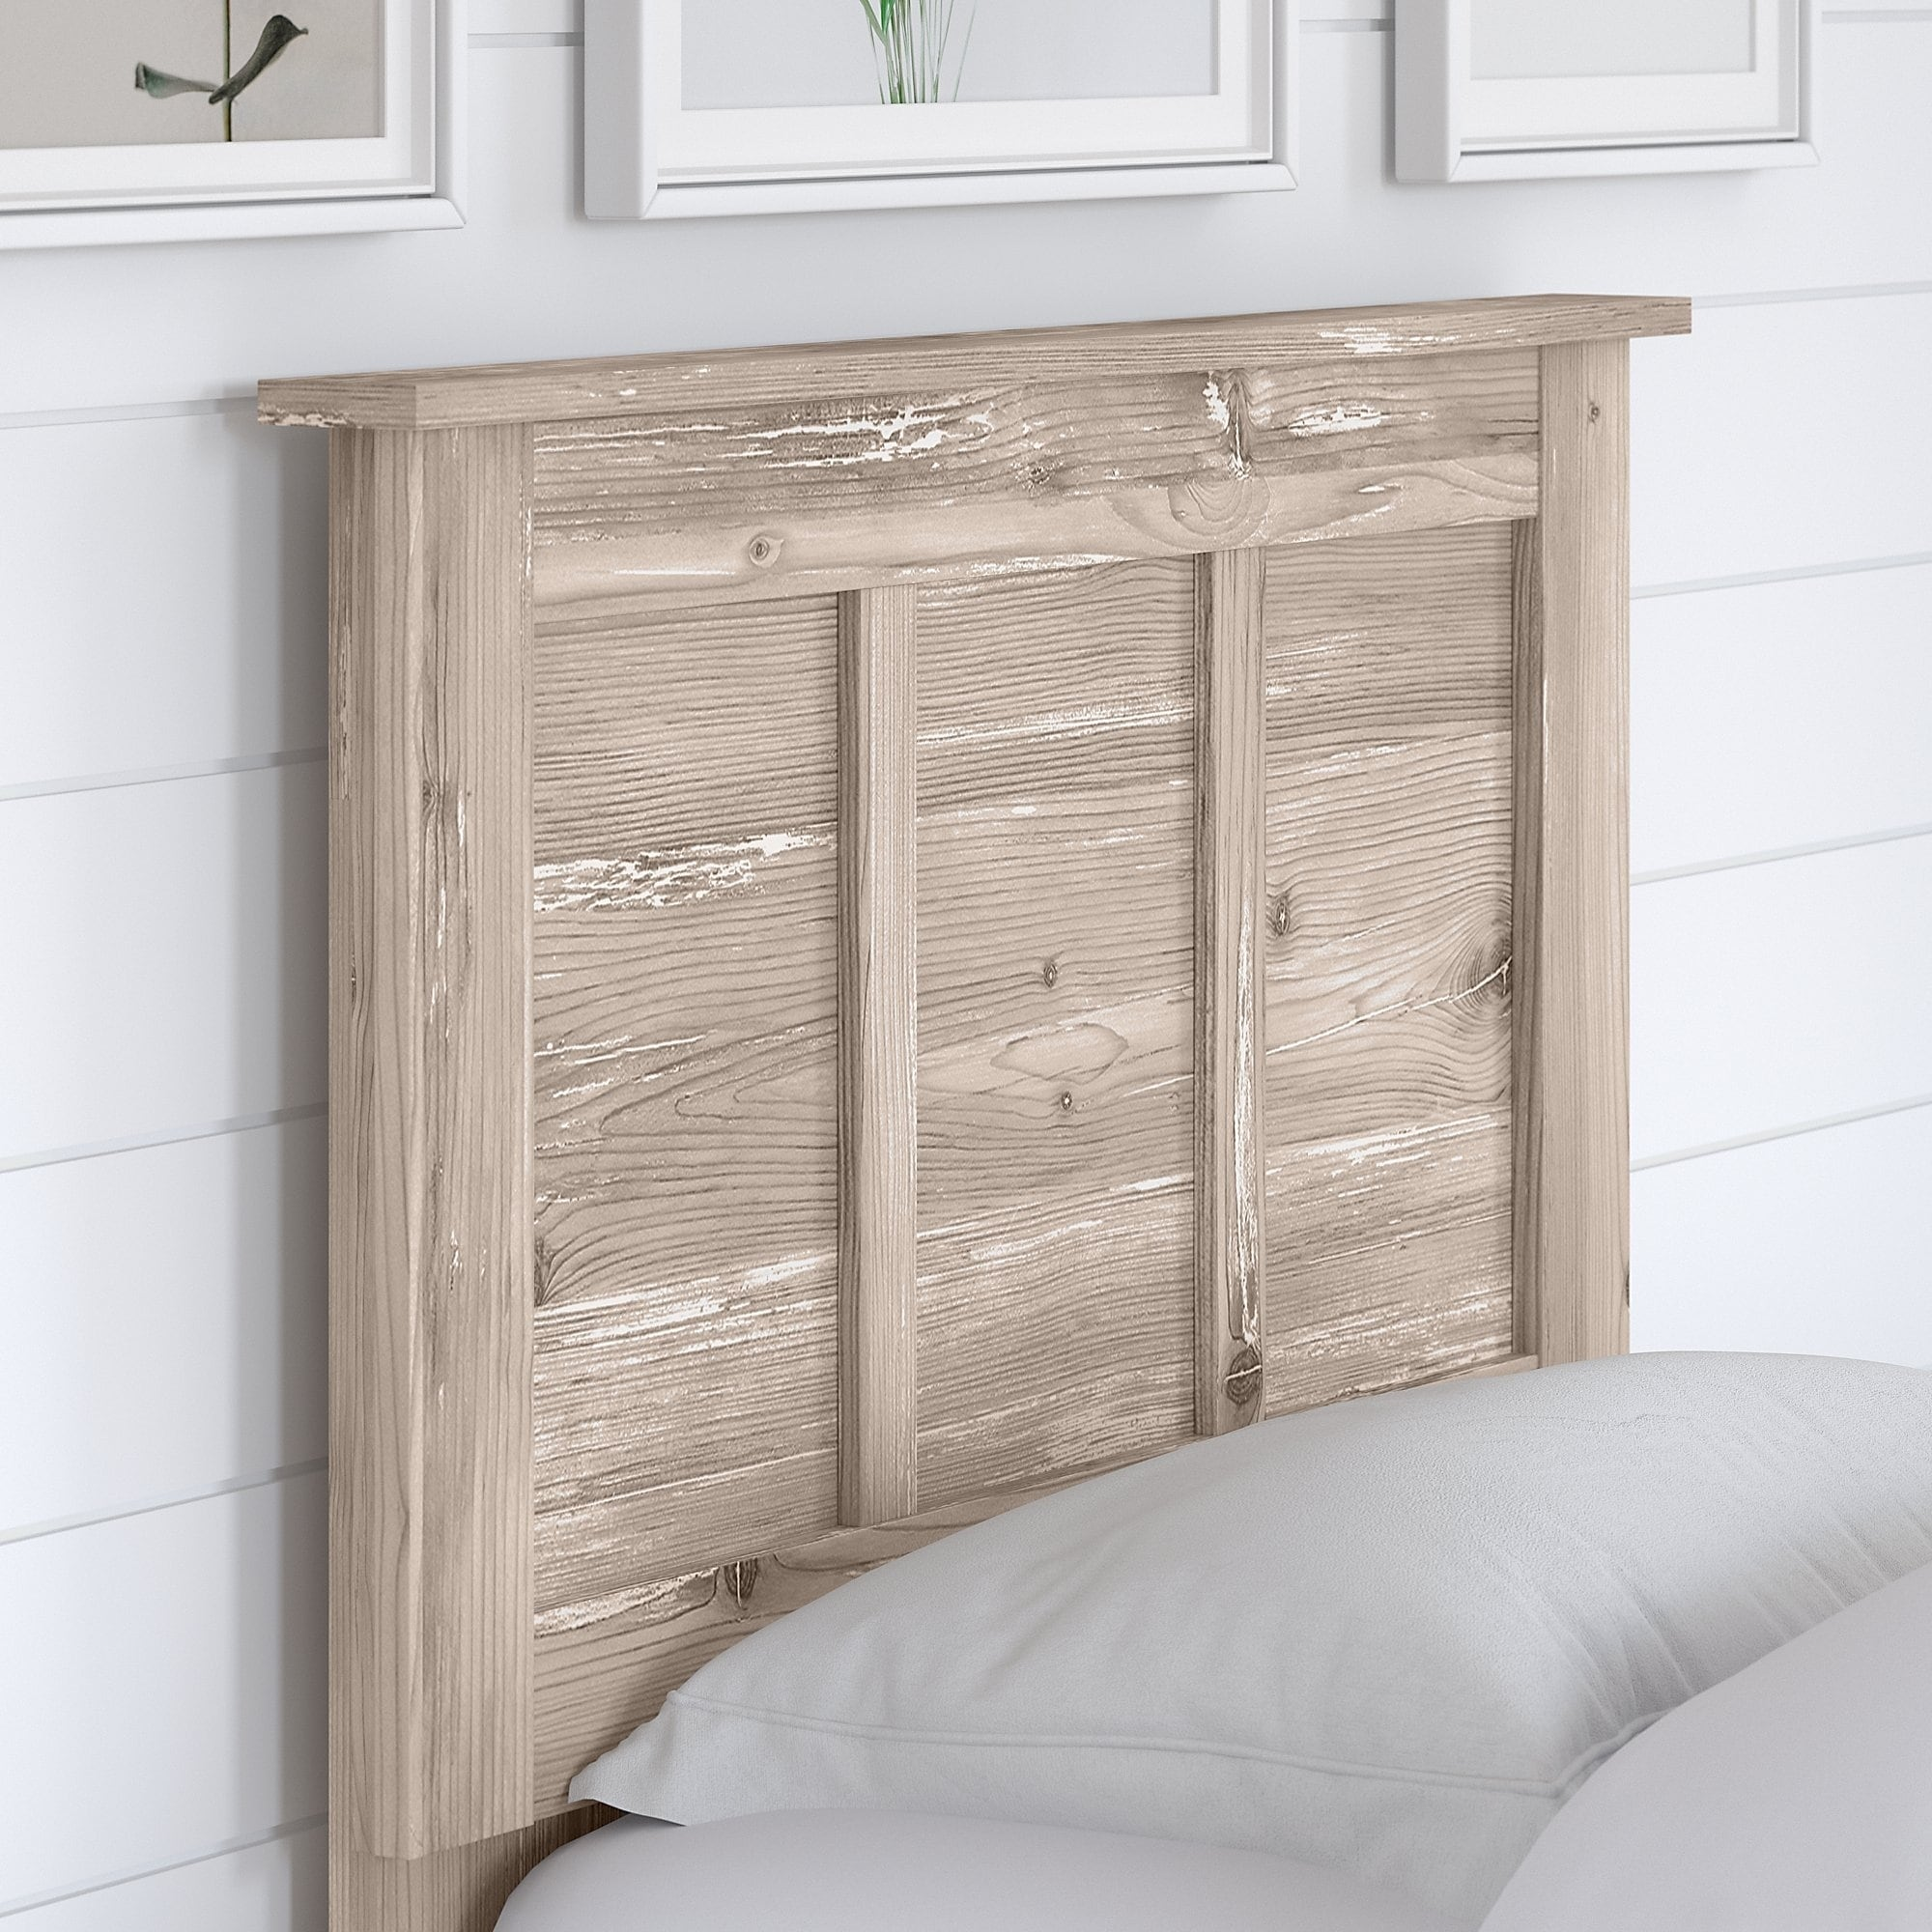 Shop Black Friday Deals On River Brook Twin Headboard From Kathy Ireland Home By Bush Furniture Overstock 30689286